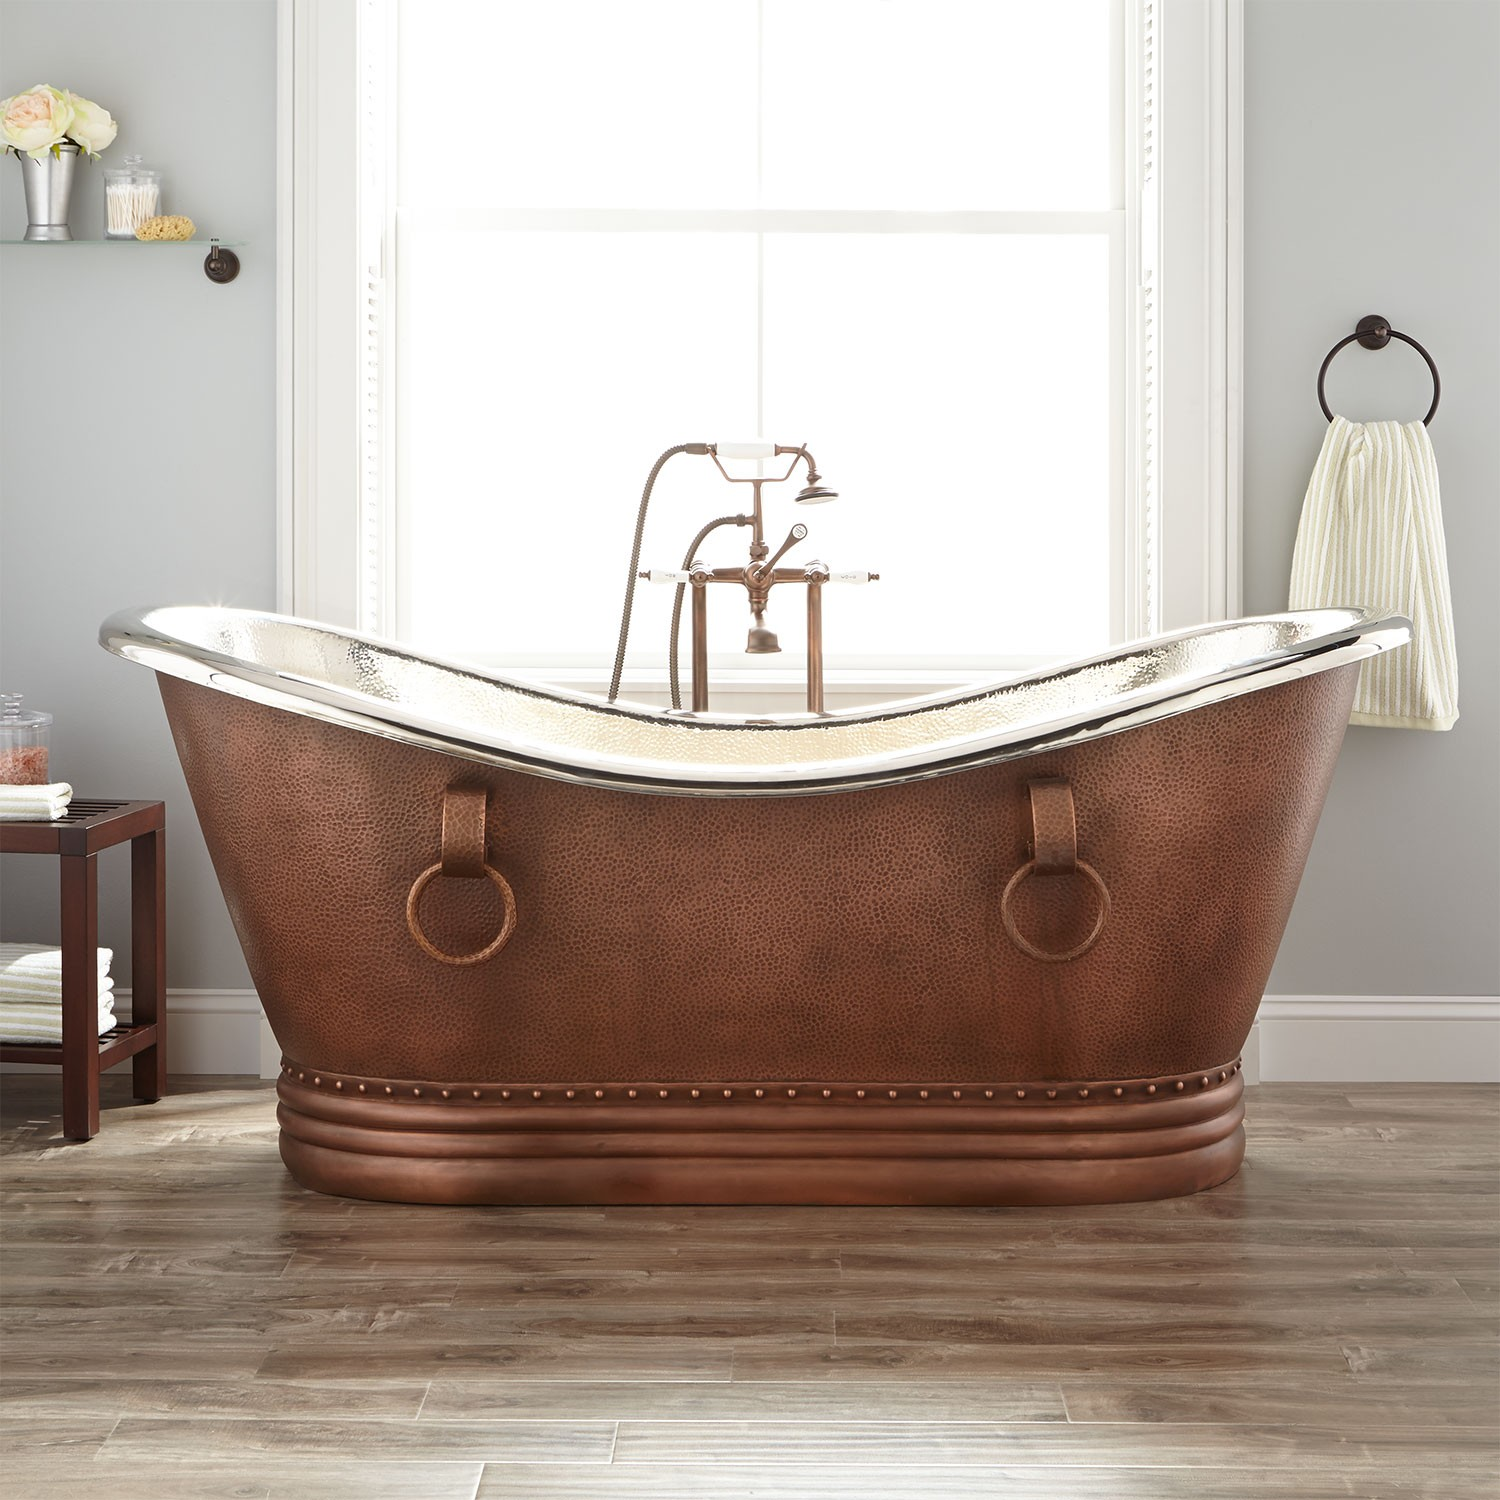 copper tub with nickel finish inside